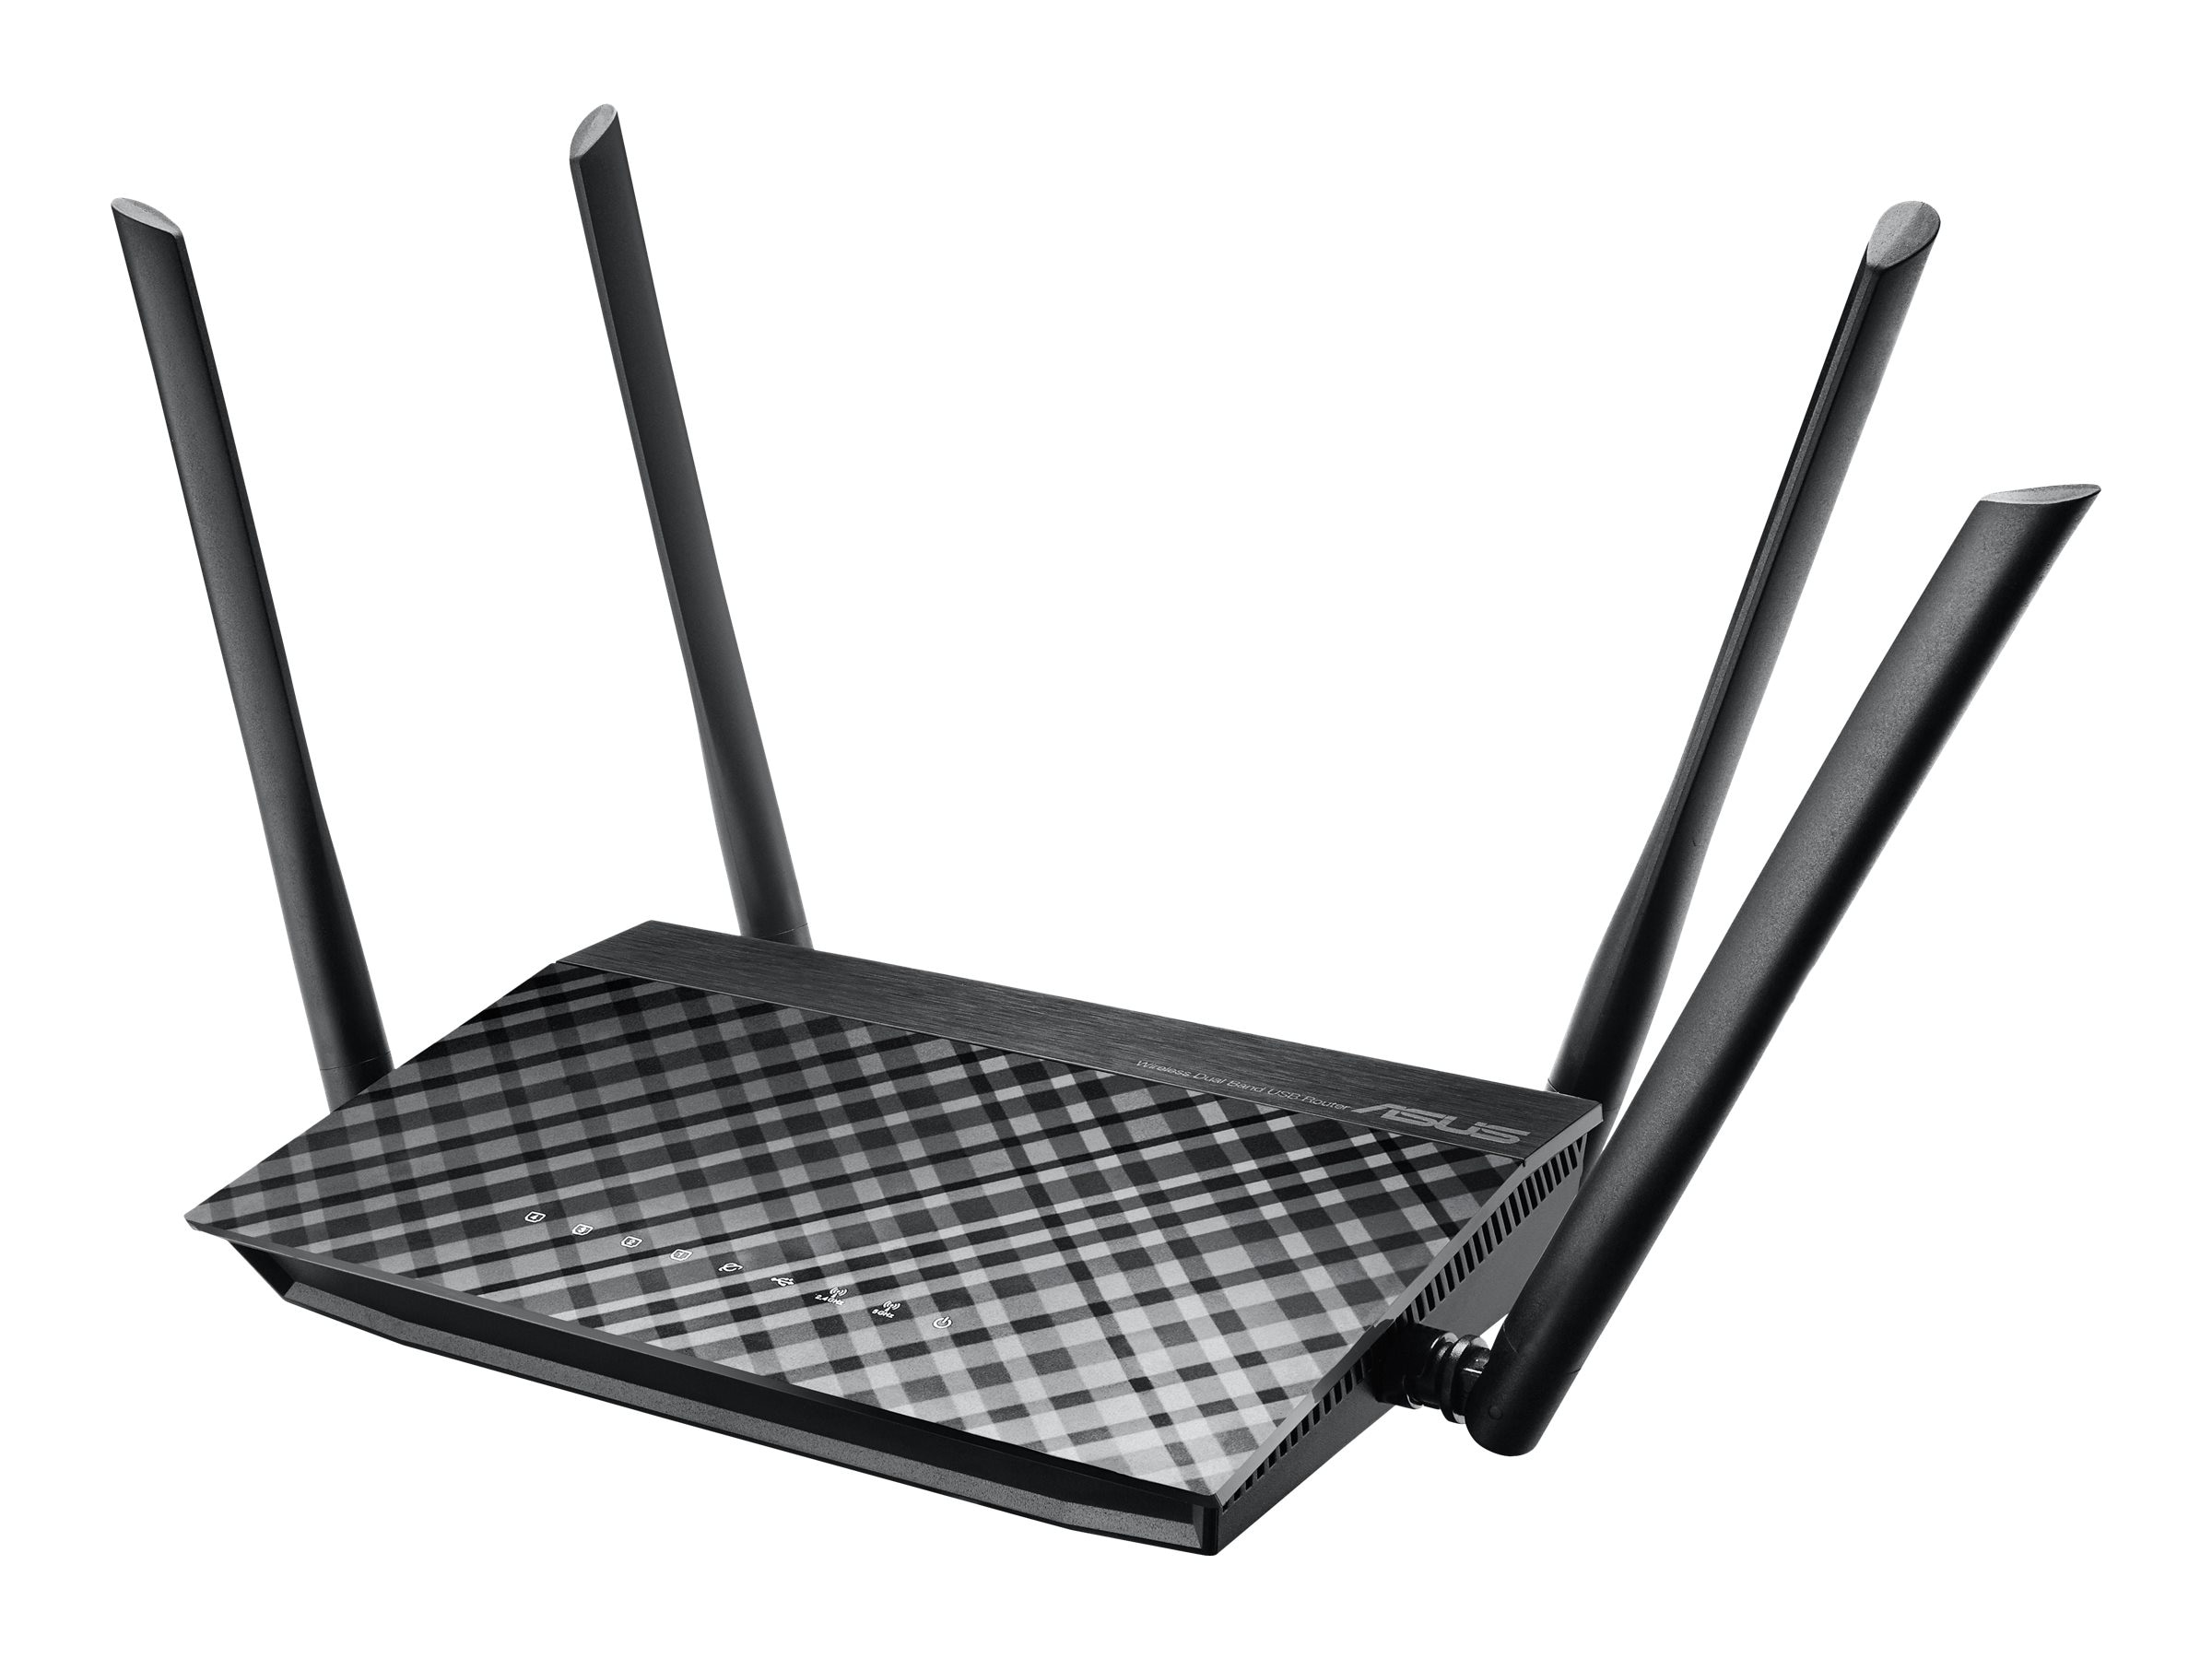 Asus AC1200 Dual Band Wireless Router